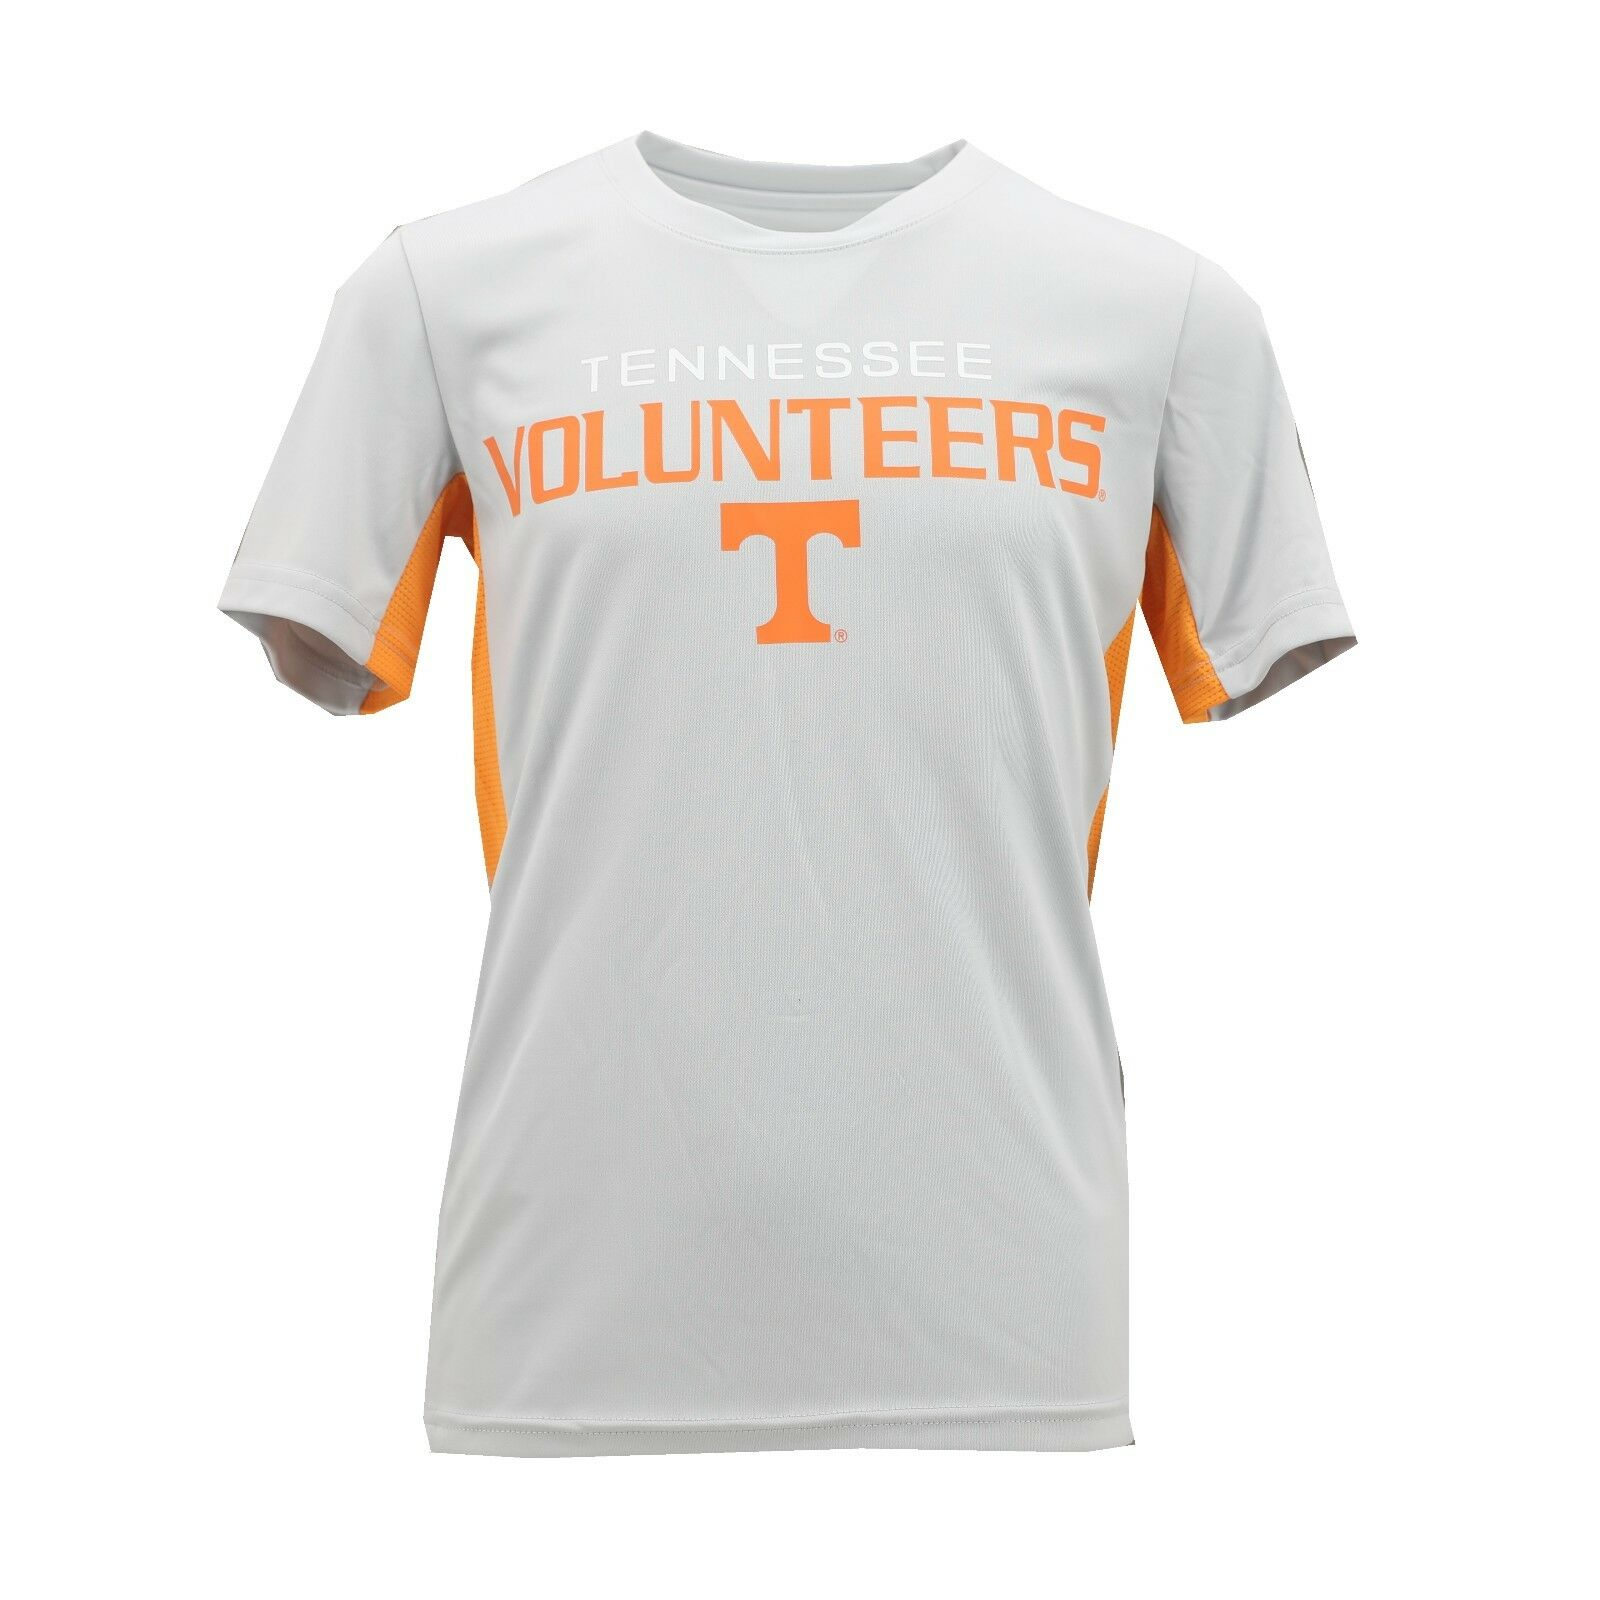 1af52335 Details about Tennessee Volunteers Official NCAA Kids Youth Size Athletic  Shirt New with Tags